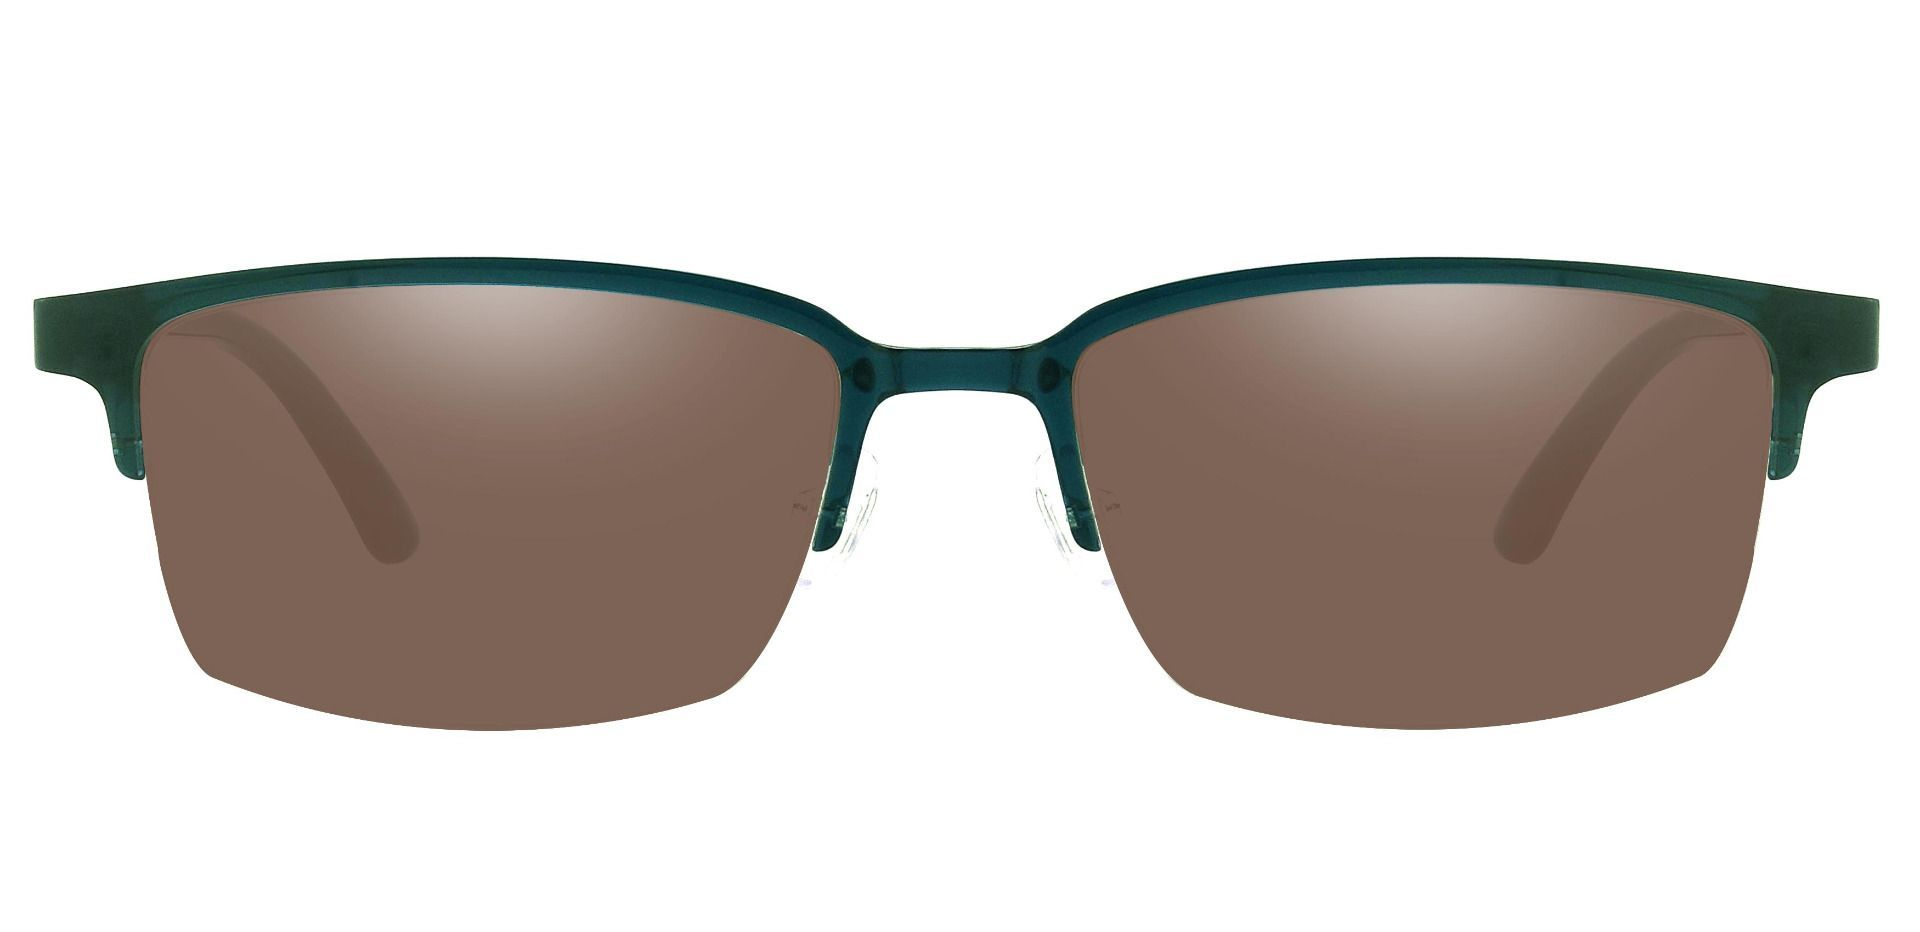 Cello Rectangle Prescription Sunglasses - Blue Frame With Brown Lenses